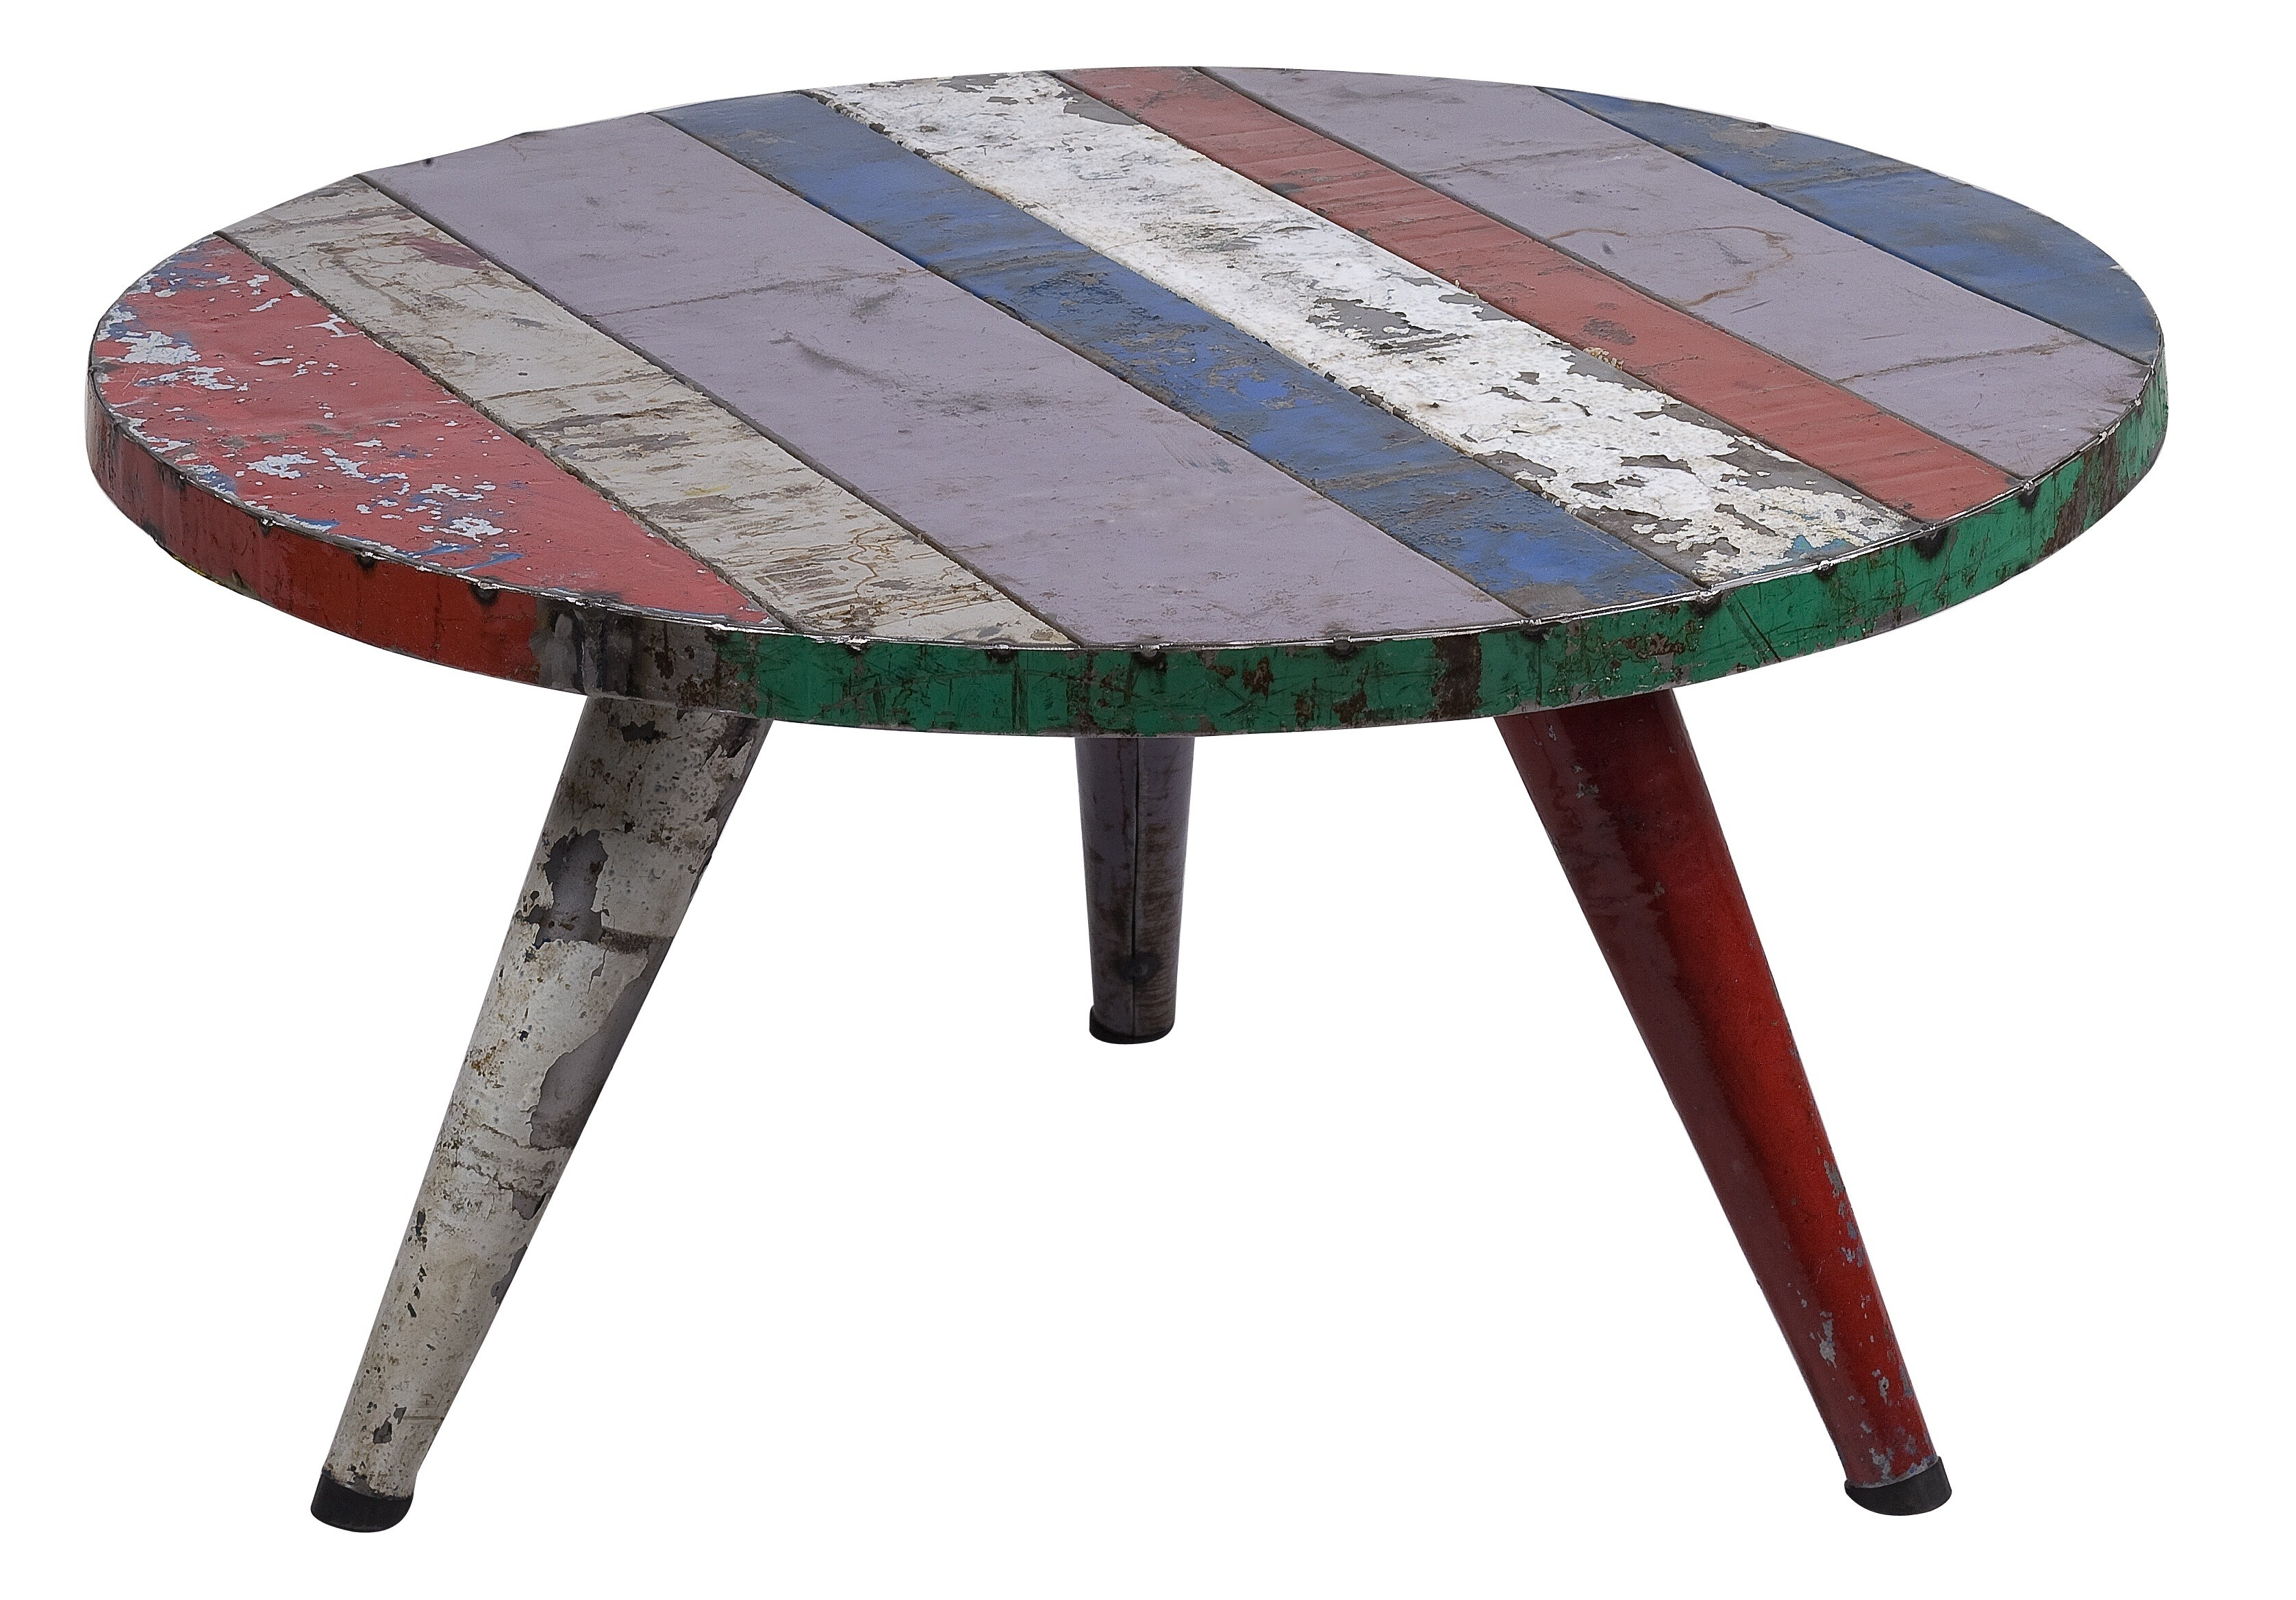 adjustable accent table design ideas pine coffee with storage furniture wonderful colorful paint modern vintage finish reclaimed wood low cool round home decor linon catalogs